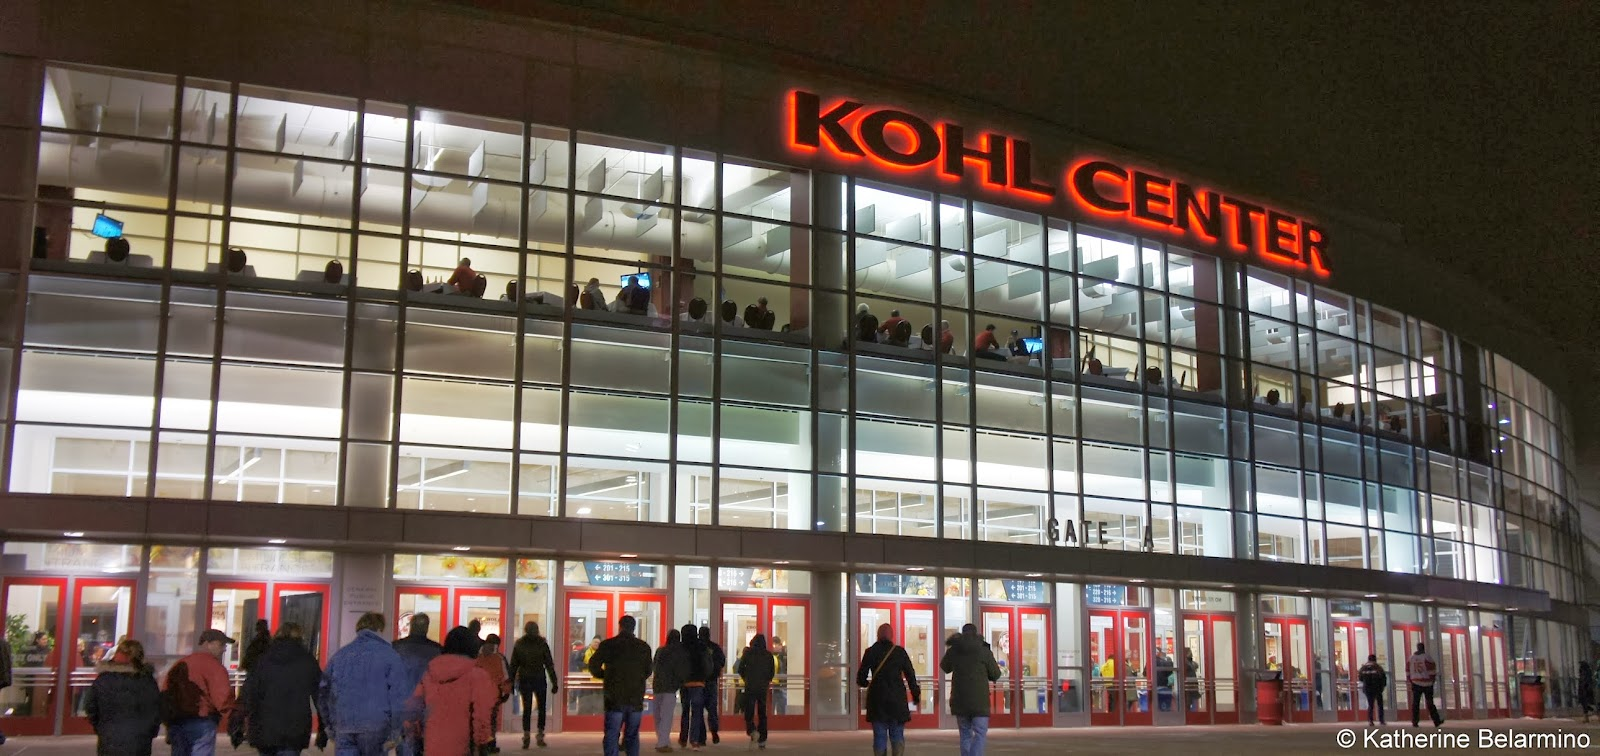 Kohl Center University of Wisconsin-Madison